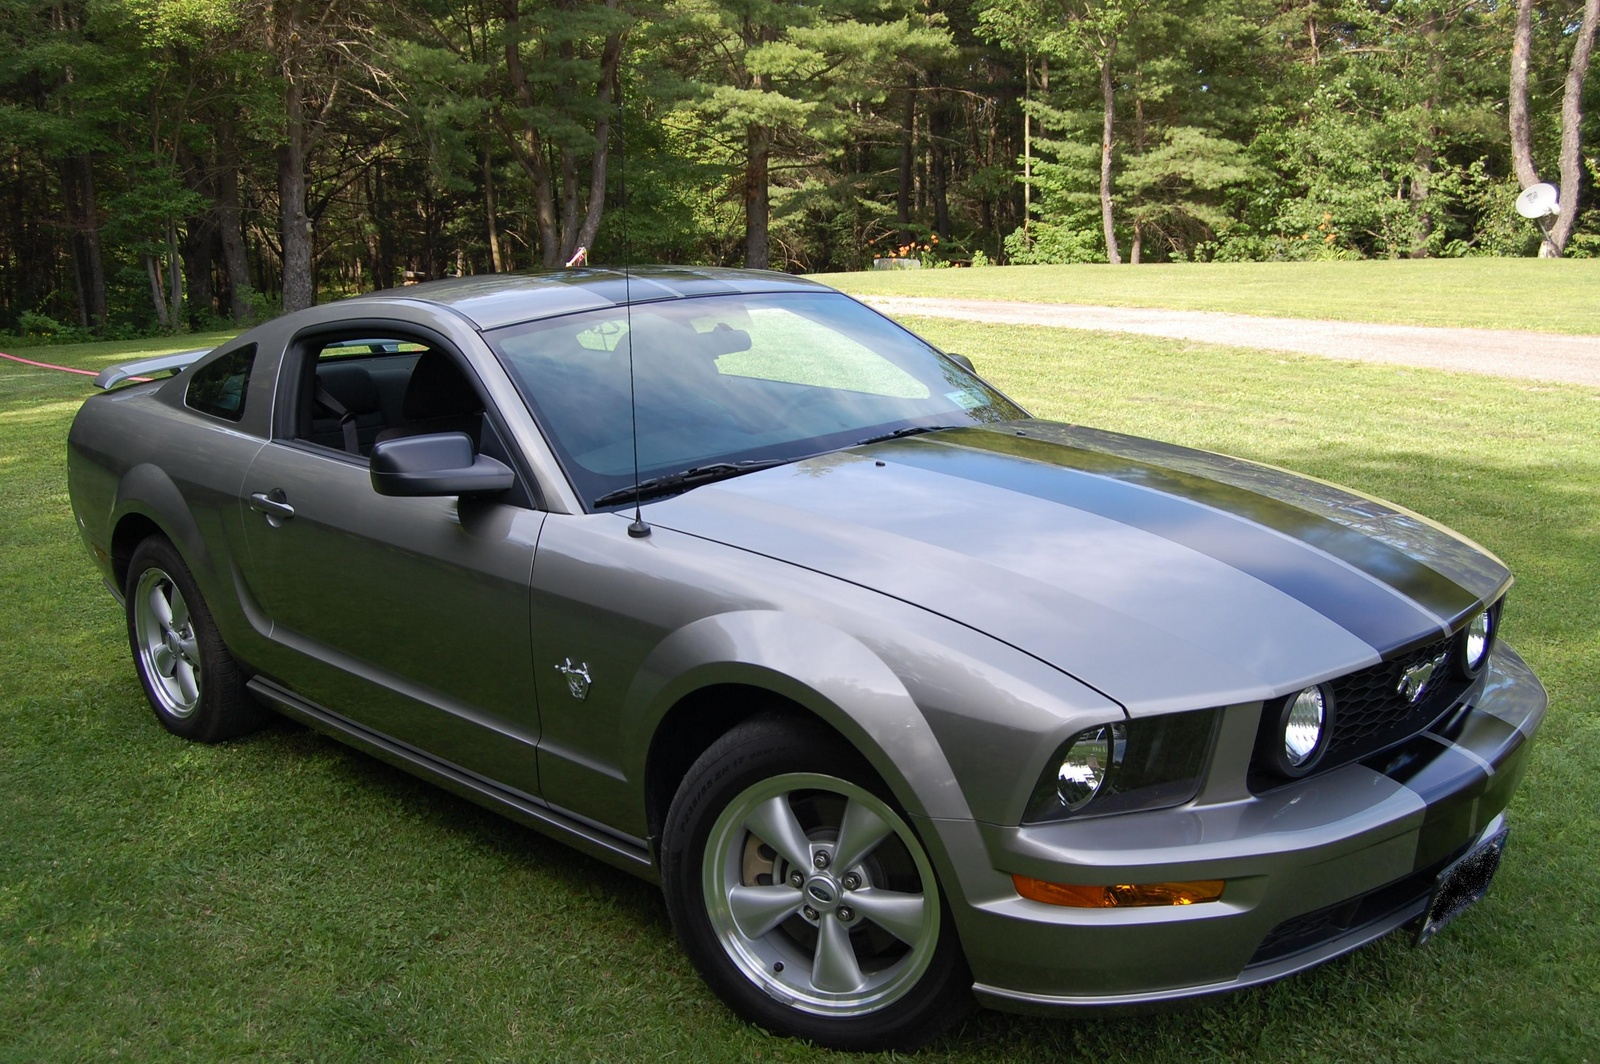 2009 ford mustang pictures cargurus. Black Bedroom Furniture Sets. Home Design Ideas